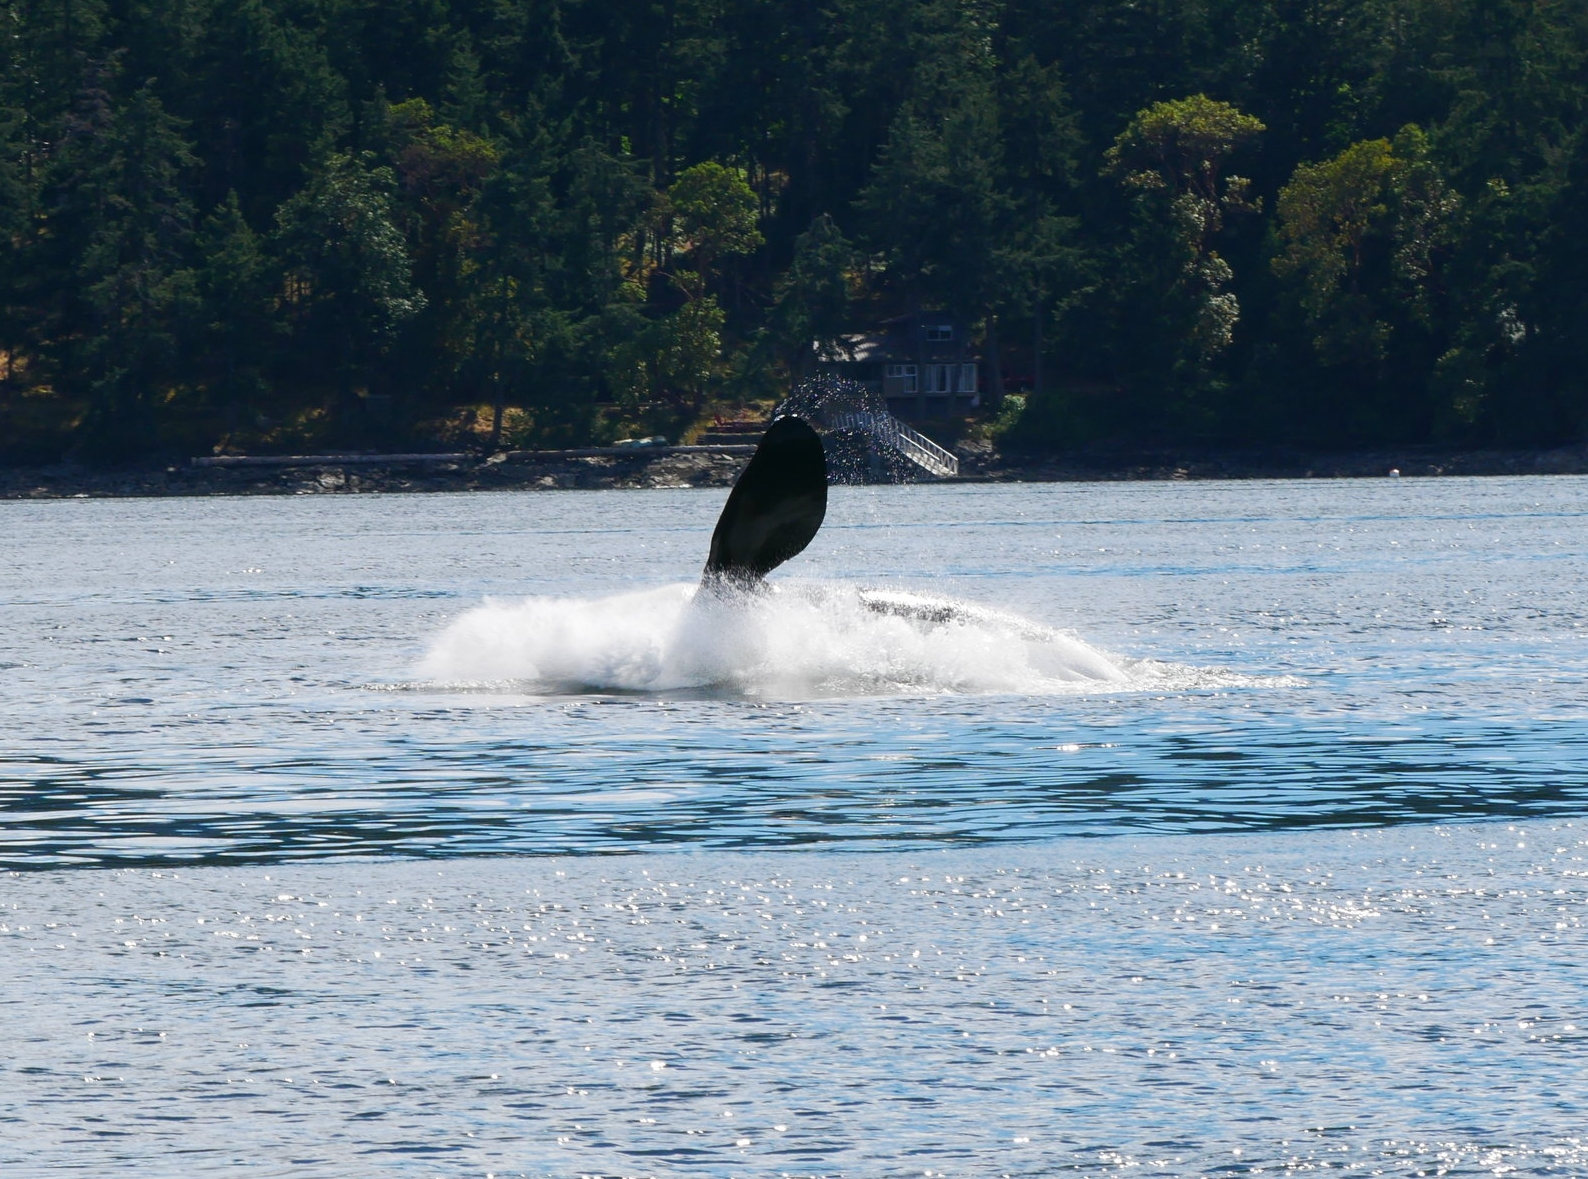 Big splash as the whale hits the water! Also a good look at the size of the pectoral fin. Photo by Val Watson.